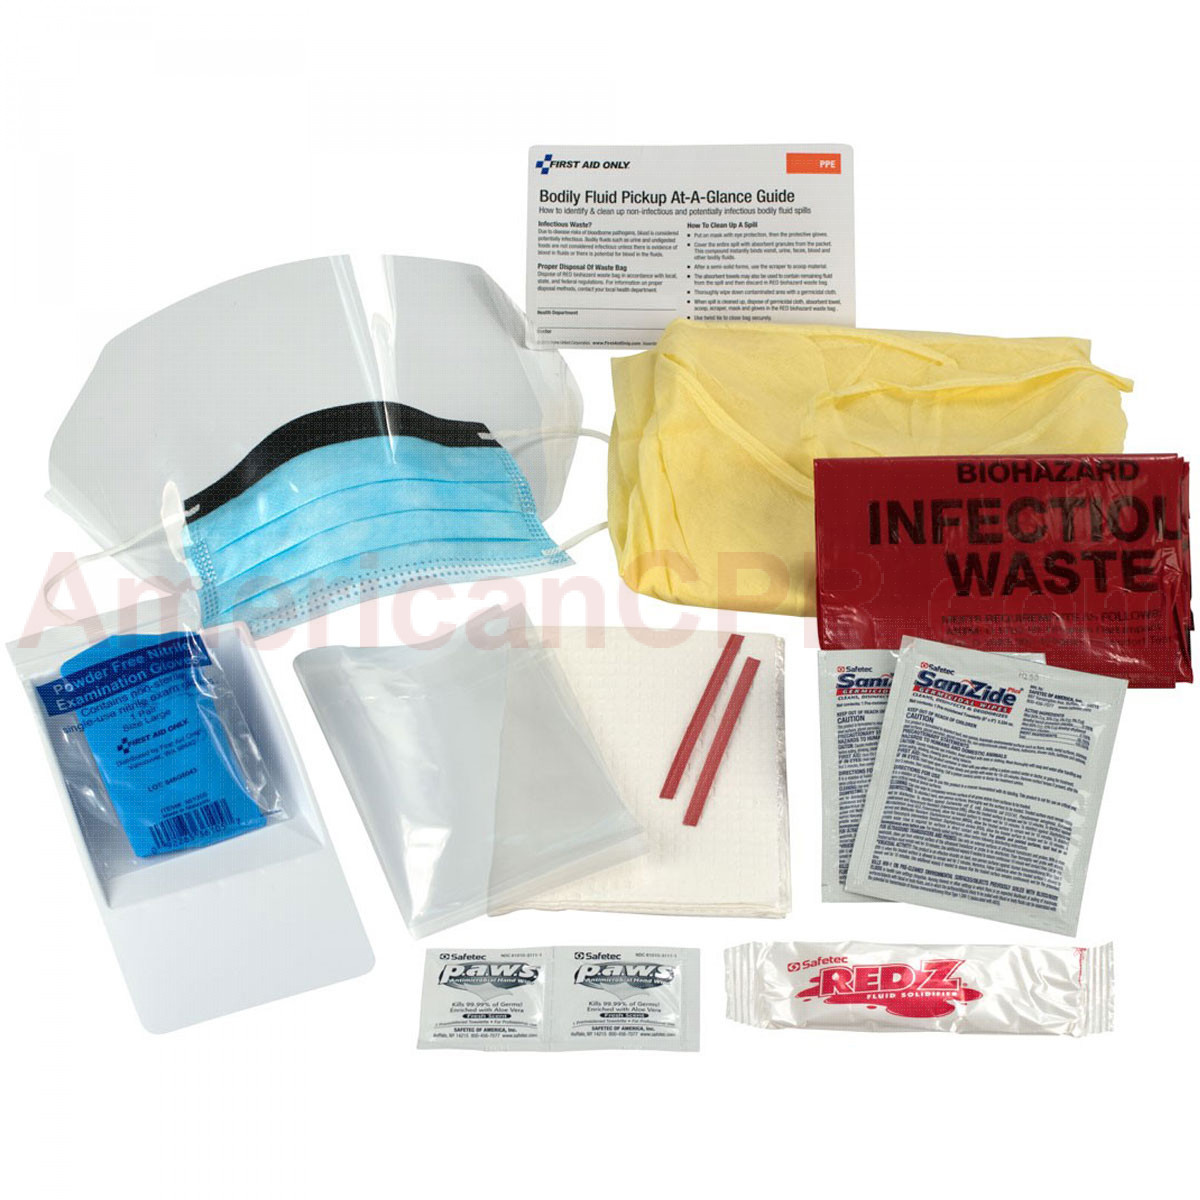 16 Piece Bodily Fluid Clean Up Pack - First Aid Only